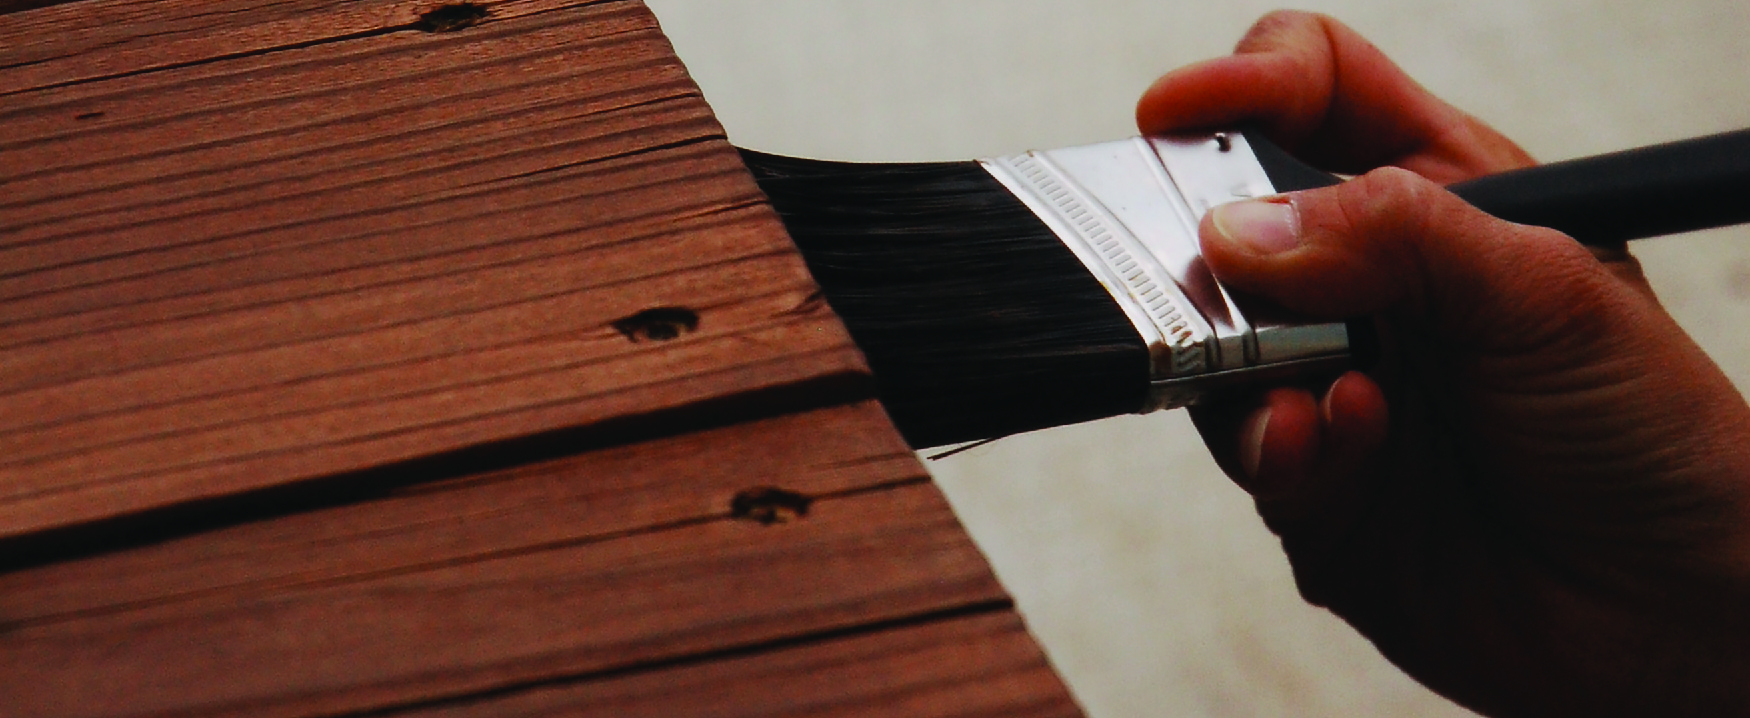 A photograph shows someone holding a brush applying stain to a piece of wood furniture.